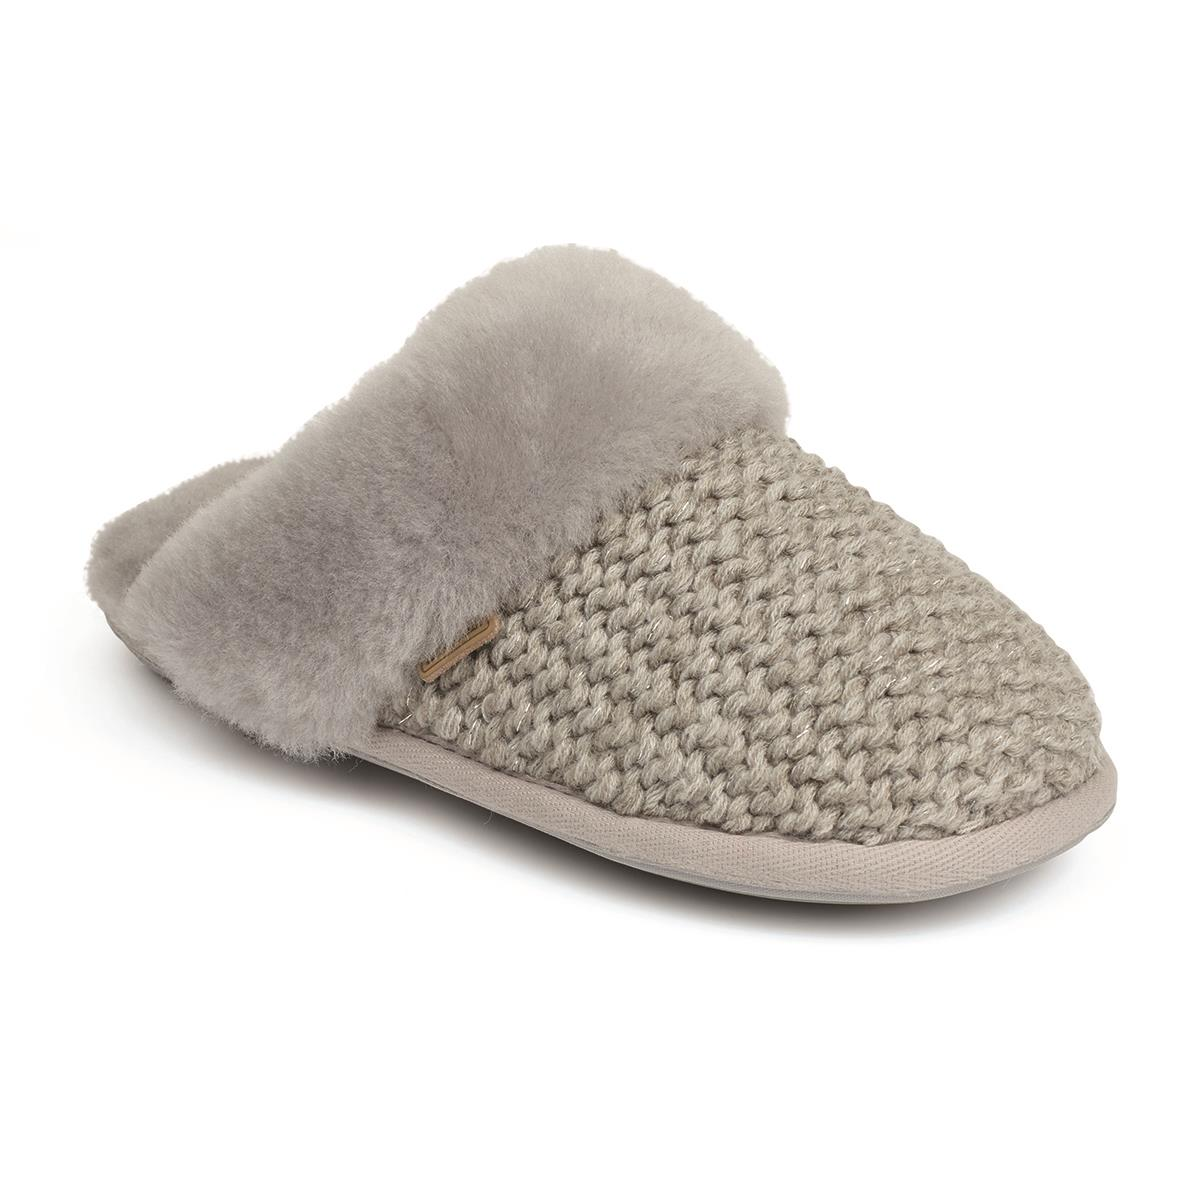 shearling sheepskin slippers with Details on Ugg Scuffette Ii Slippers Grey 2 also 291037422333 moreover Shearling Sheepskin Newsboy Hat Cognac P 883 also Chestnut Stoneman Mens Sheepskin Boot P47387 furthermore Womens Min onka Moccasins Sheepskin Hardsole Moccasin Slippers Tan.